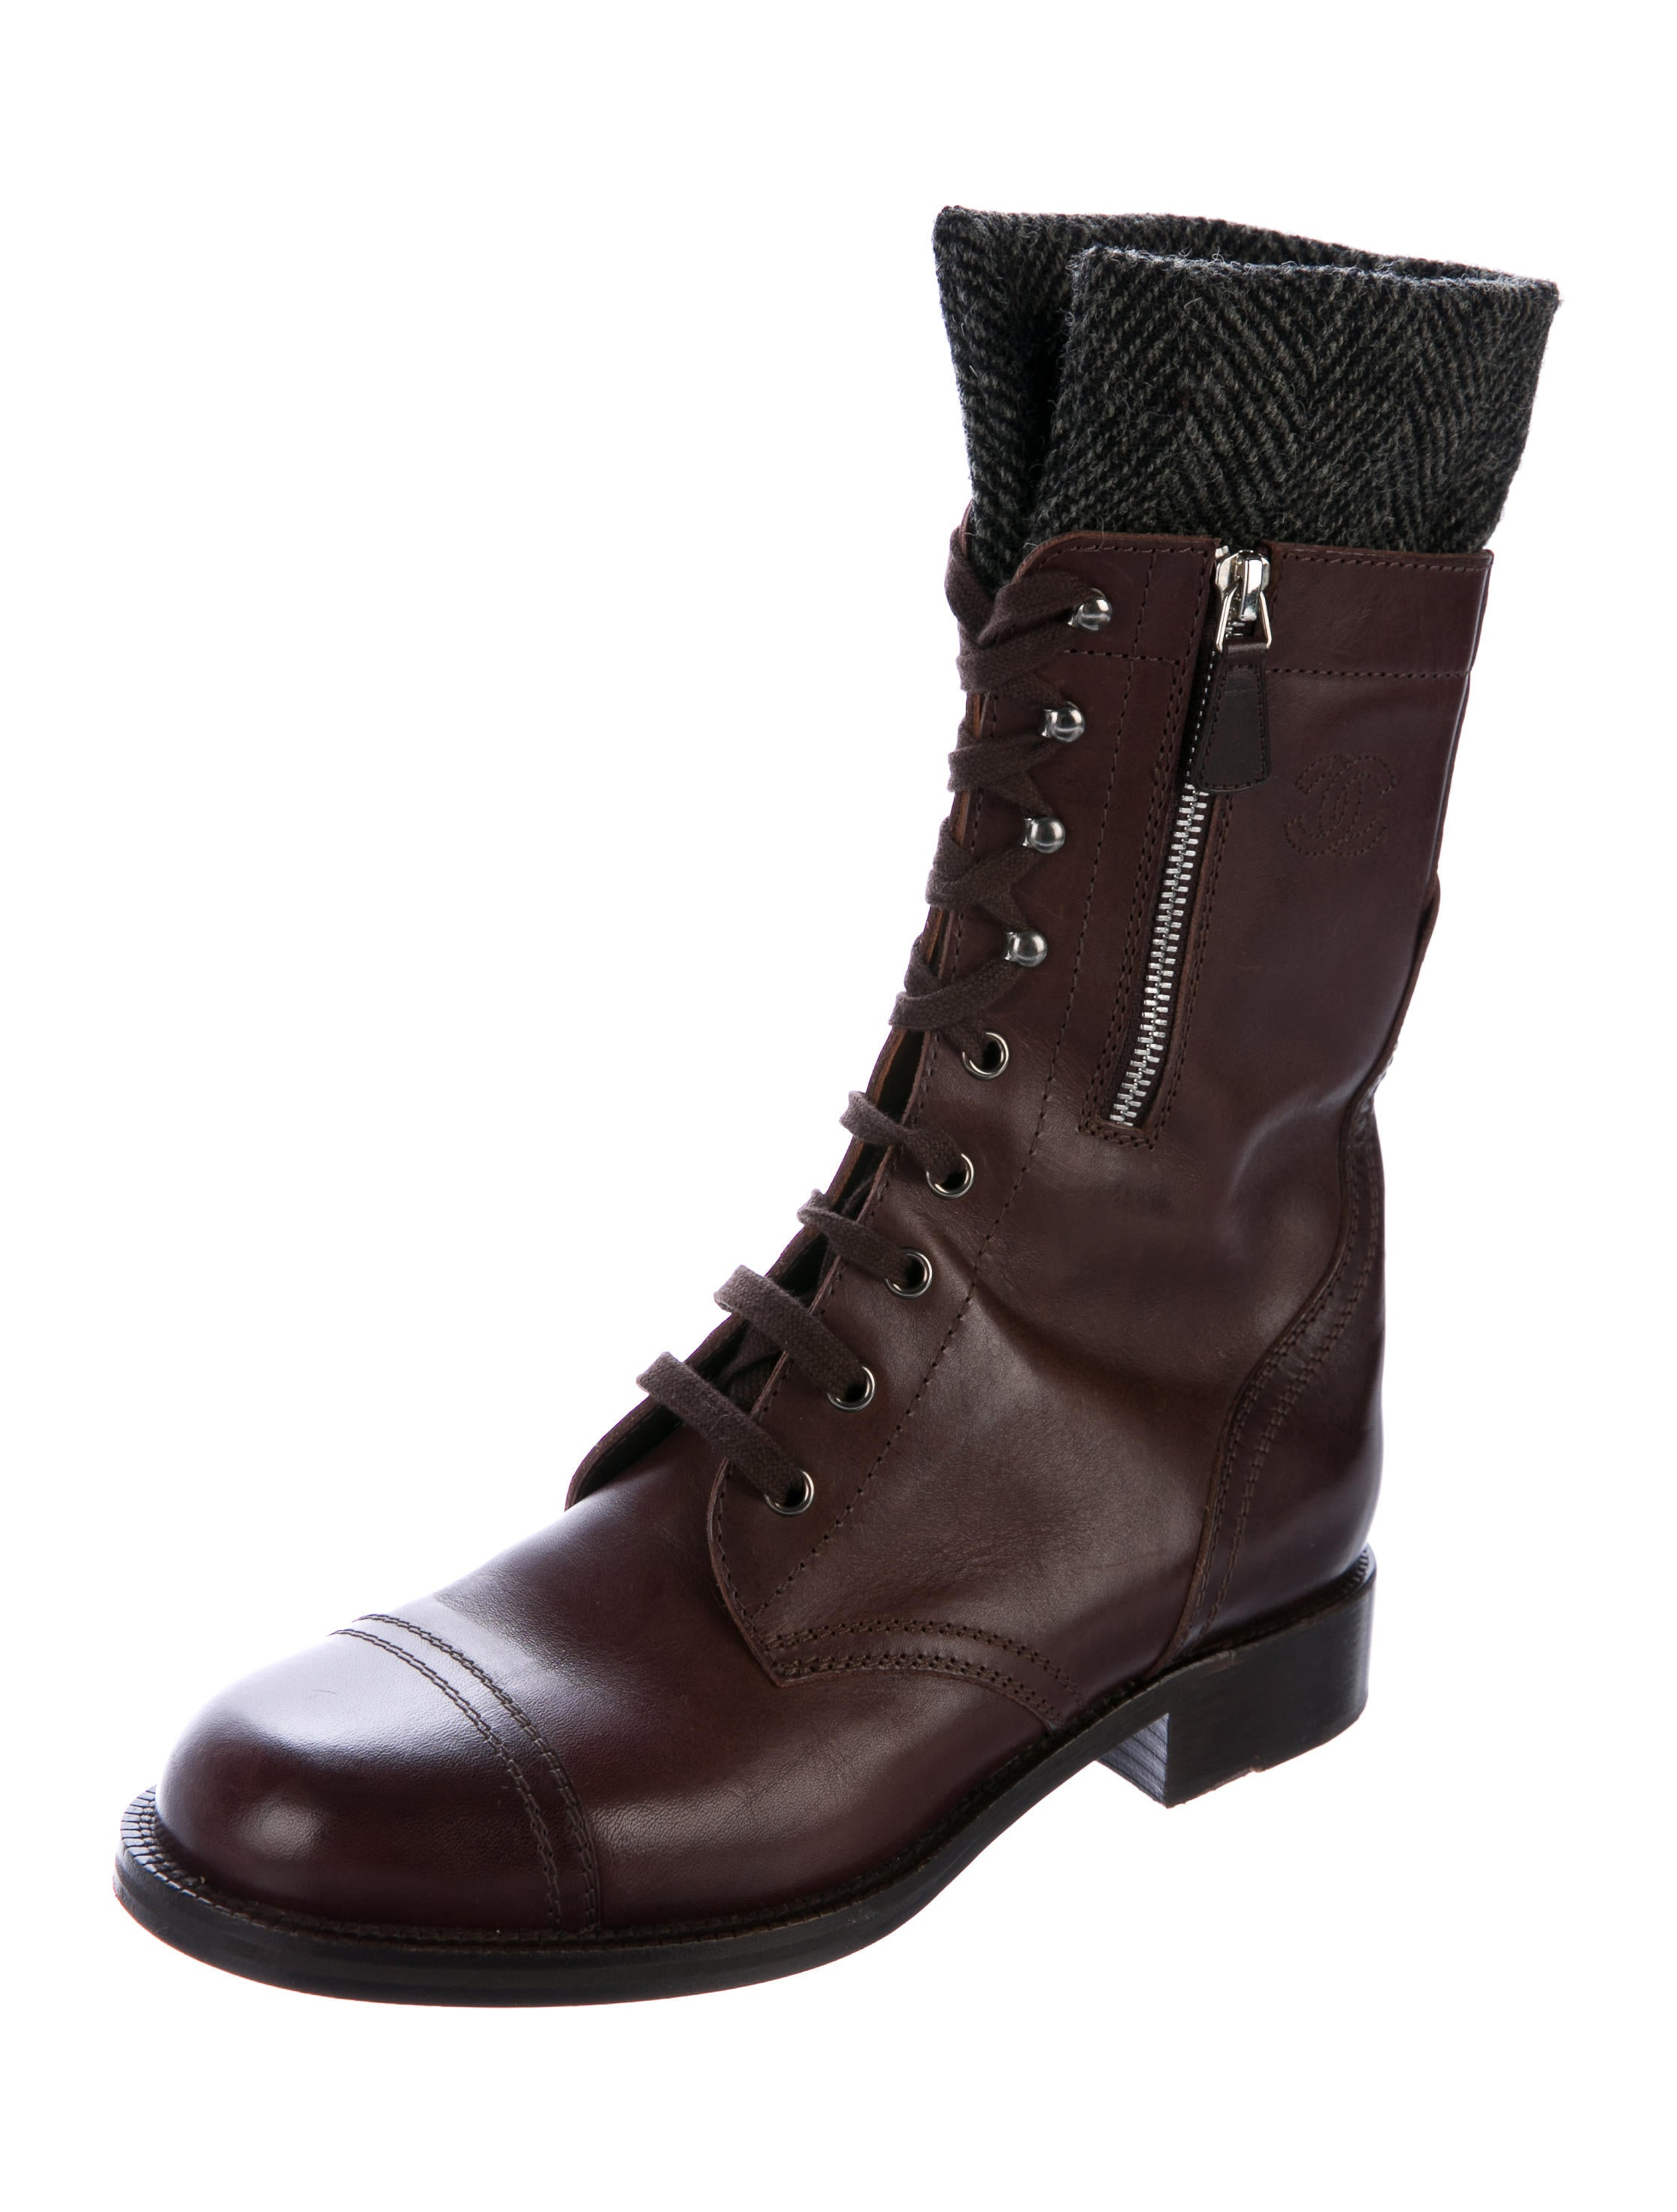 Chanel Leather Mid-Calf Combat Boots - Shoes - CHA193882 ...